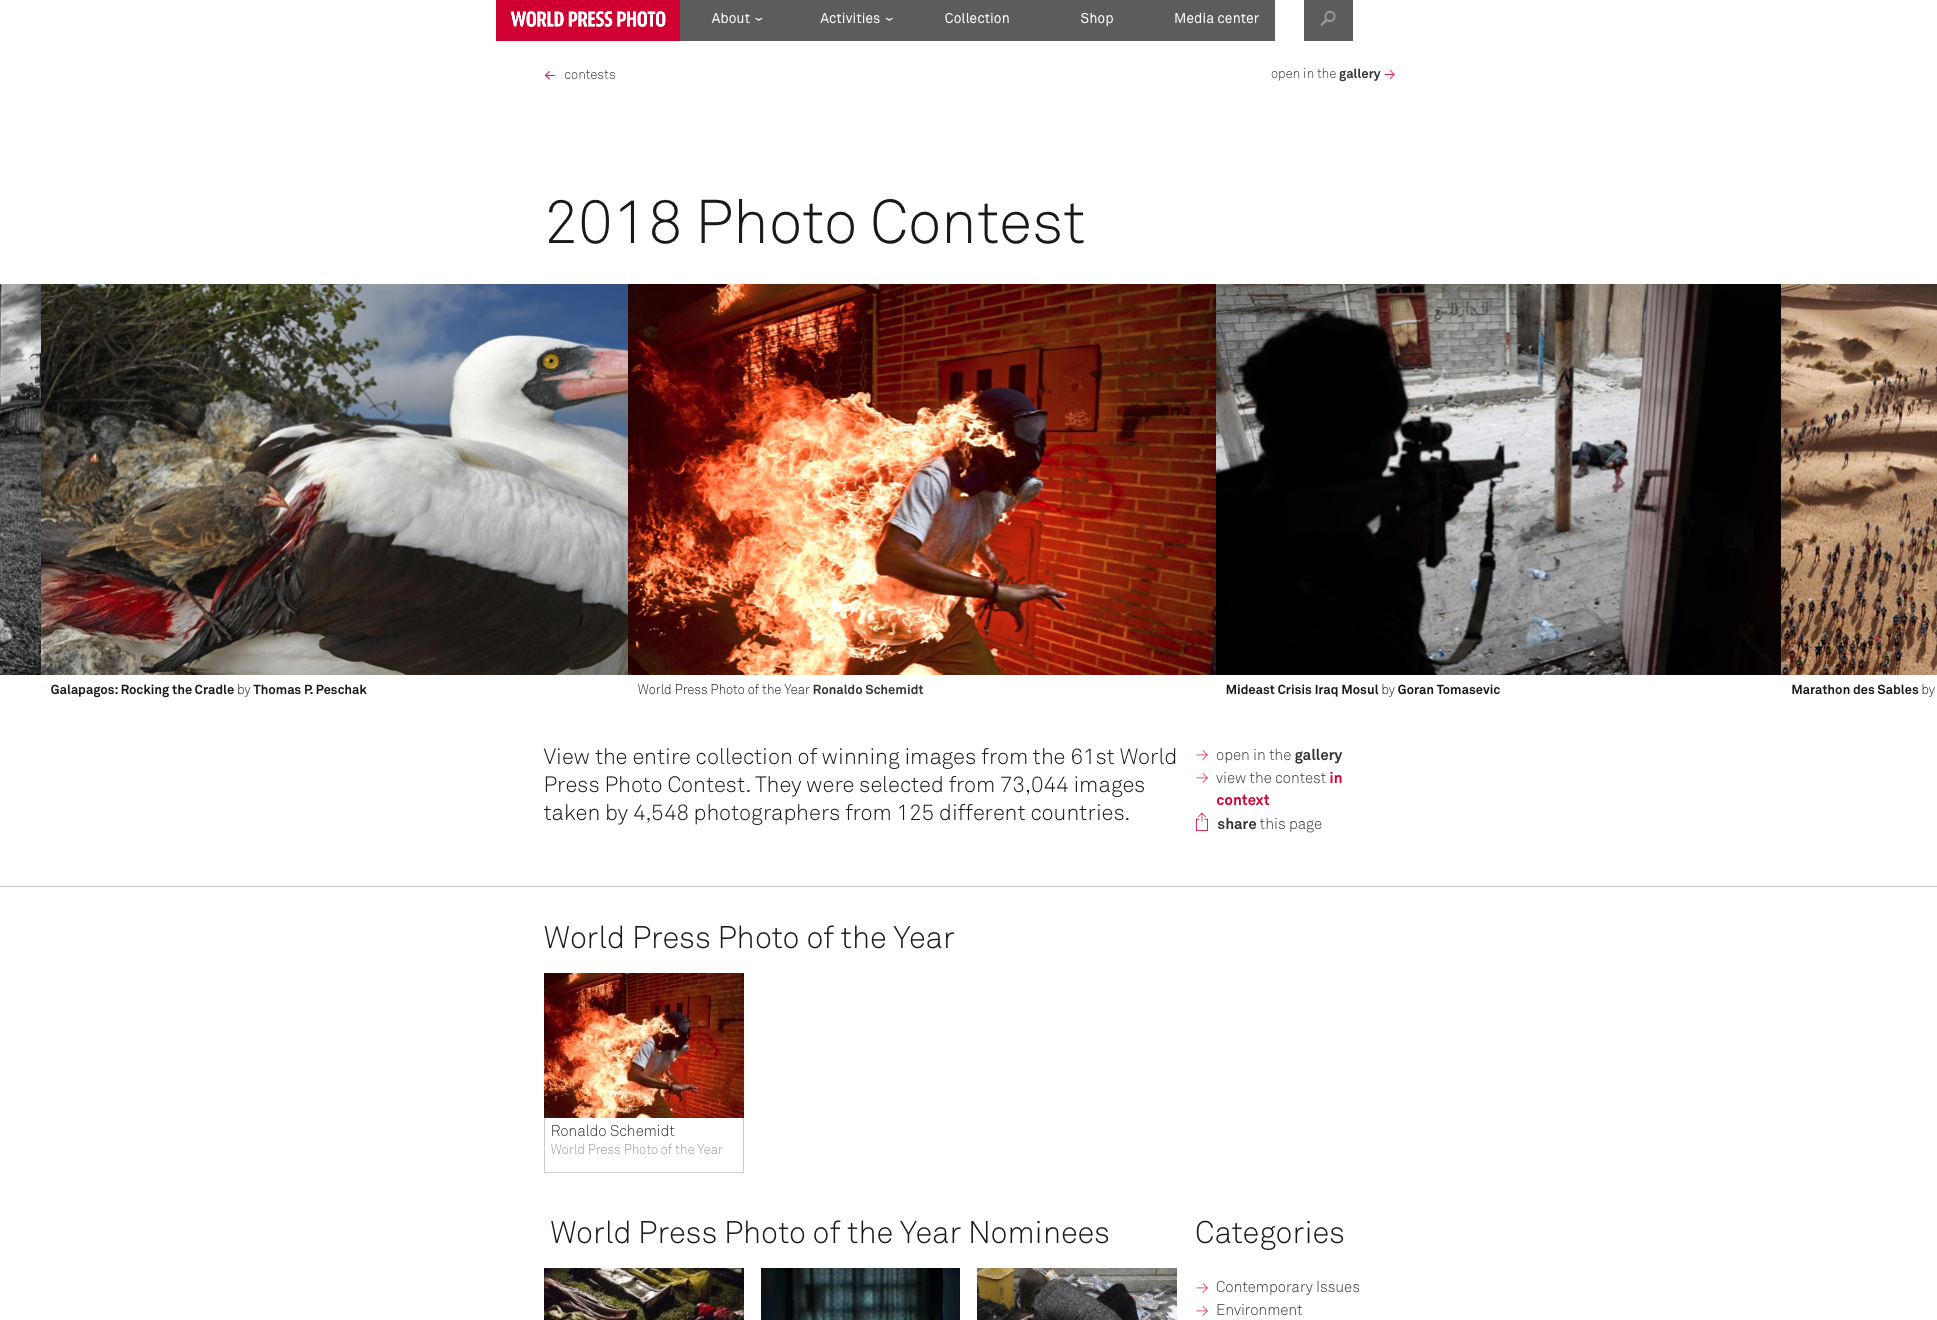 ©World Press Photo 2018 Awards